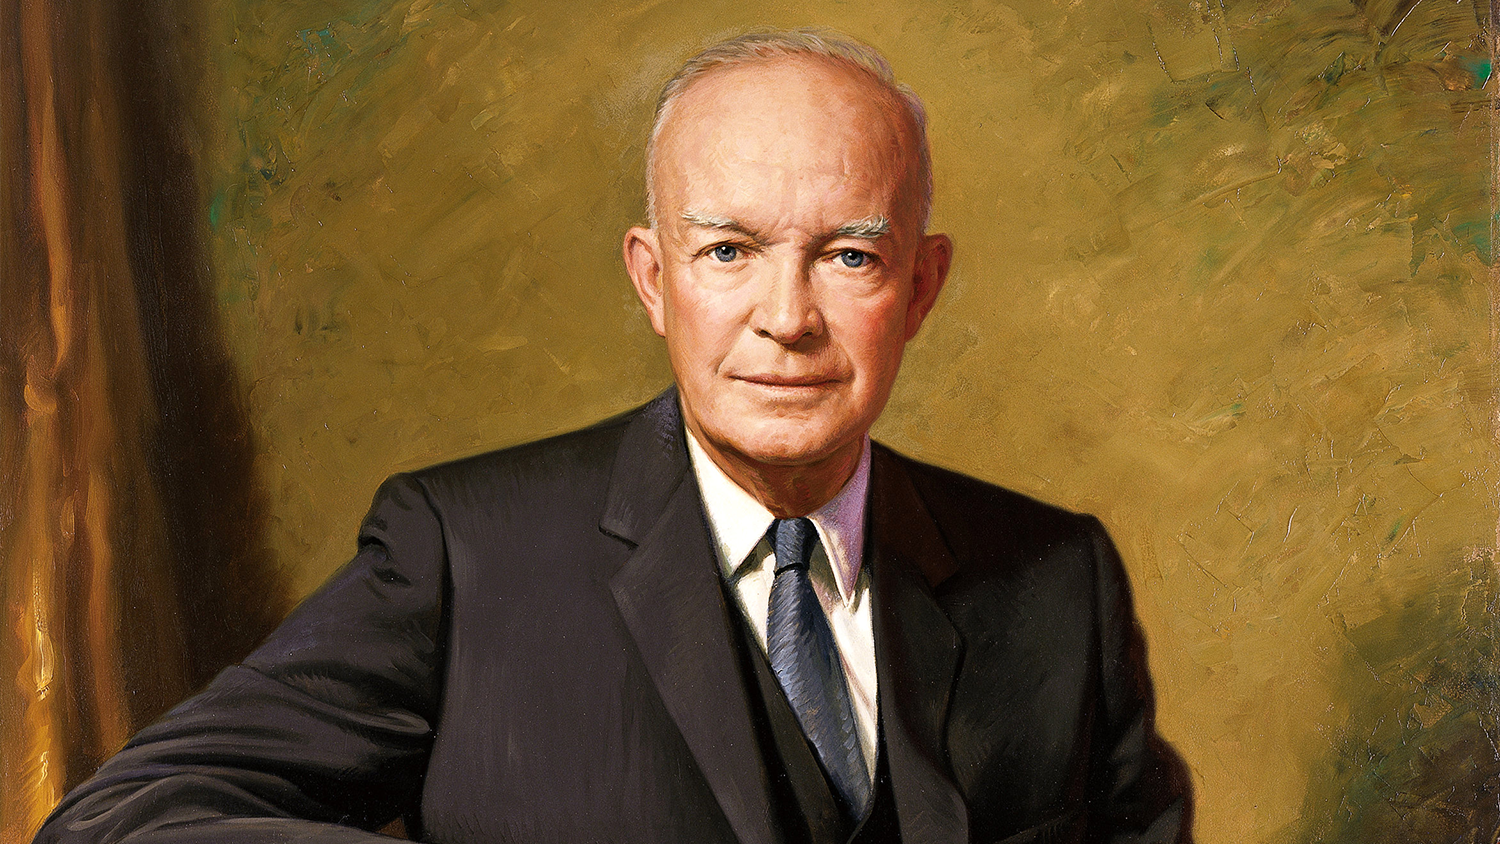 presidenteisenhower-blog-050619